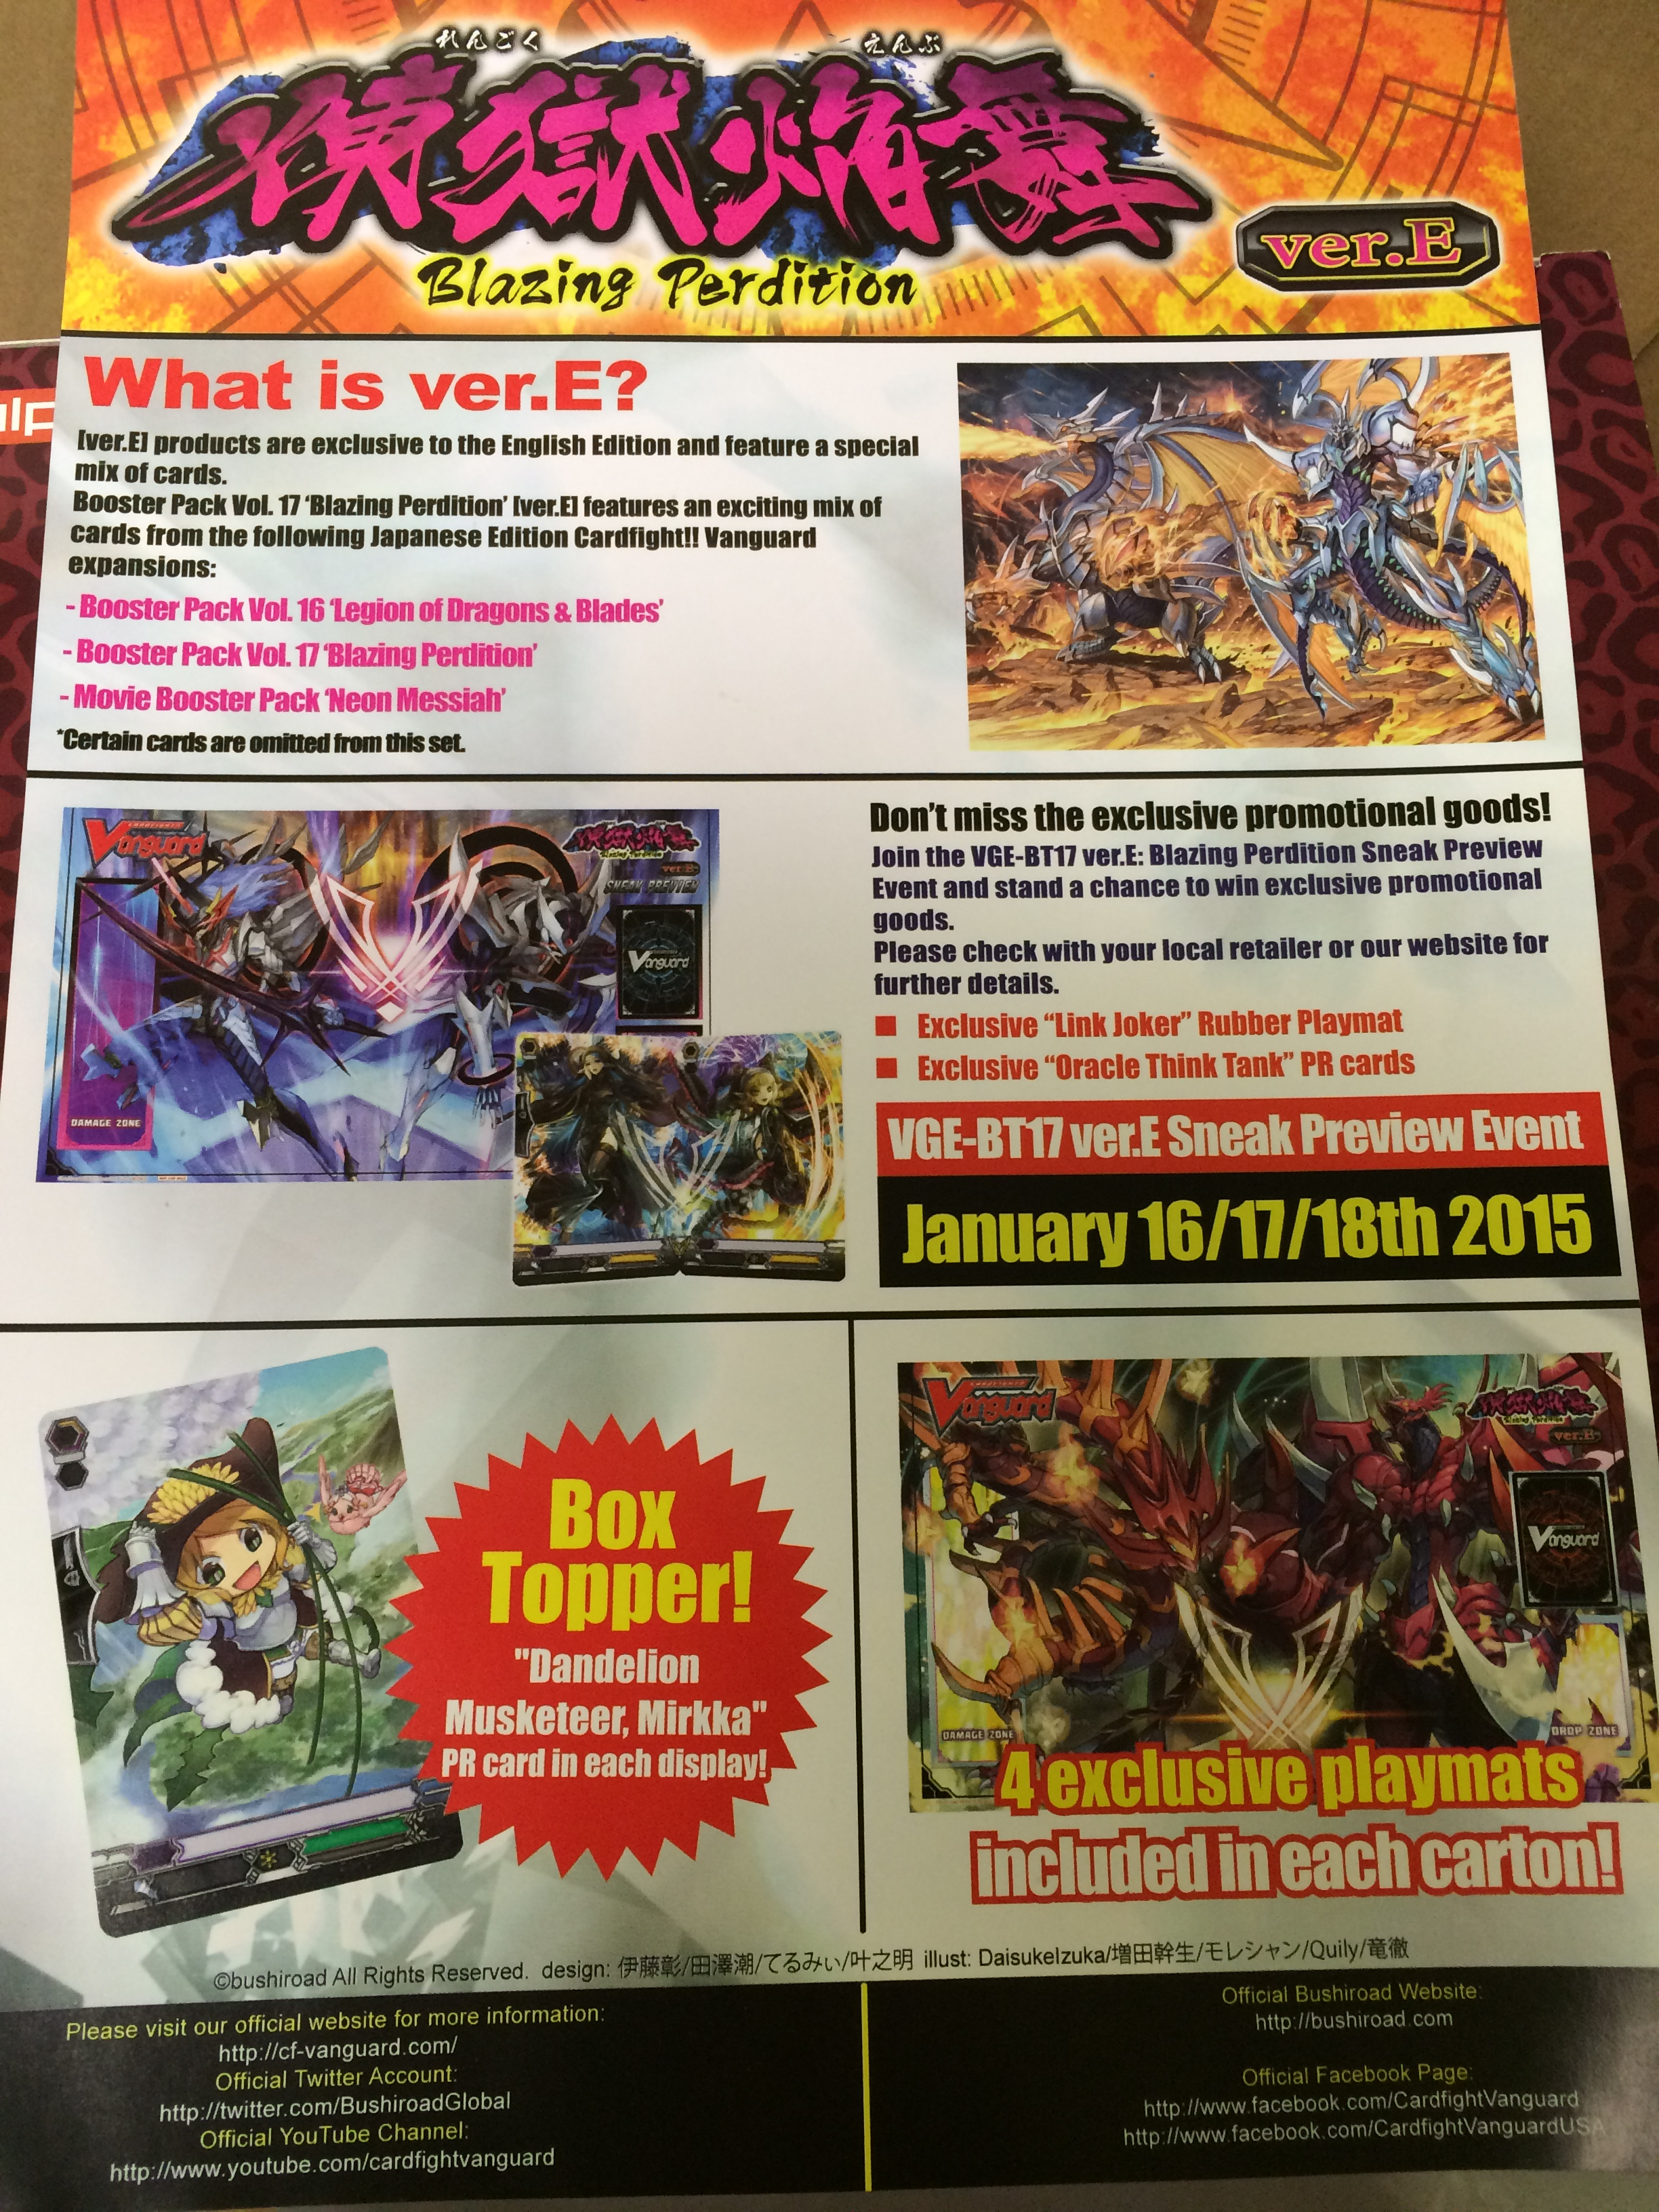 [ Booster Set 16-17 ] Legion of Dragons and Blades Ver-E ( 19 Decembre 2014 ) et Blazing Perdition Ver-E ( 23 Janvier ) BT16VE_3495